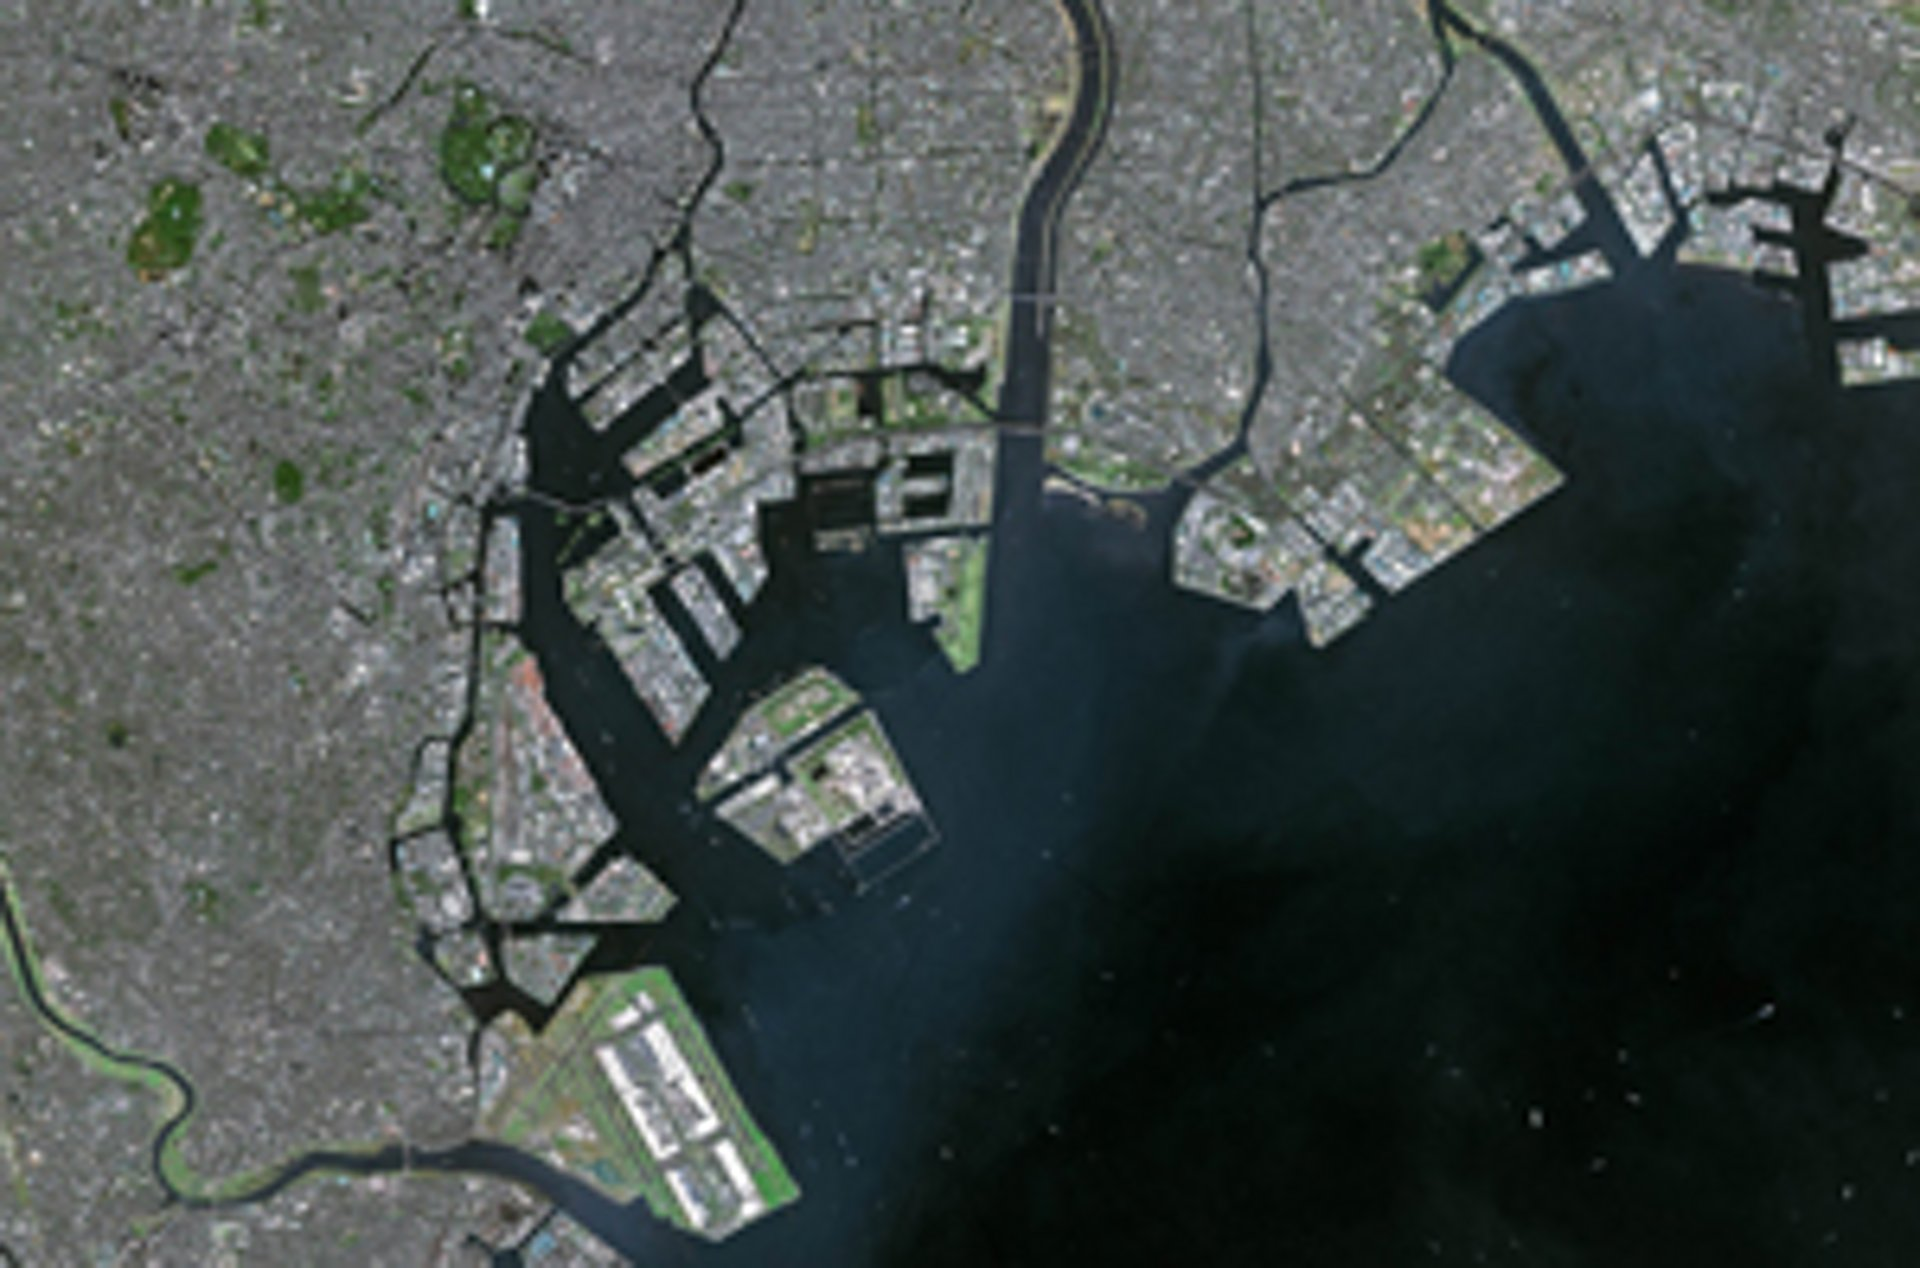 Satellite imagery of a port area provided by an Airbus-produced Earth observation spacecraft.